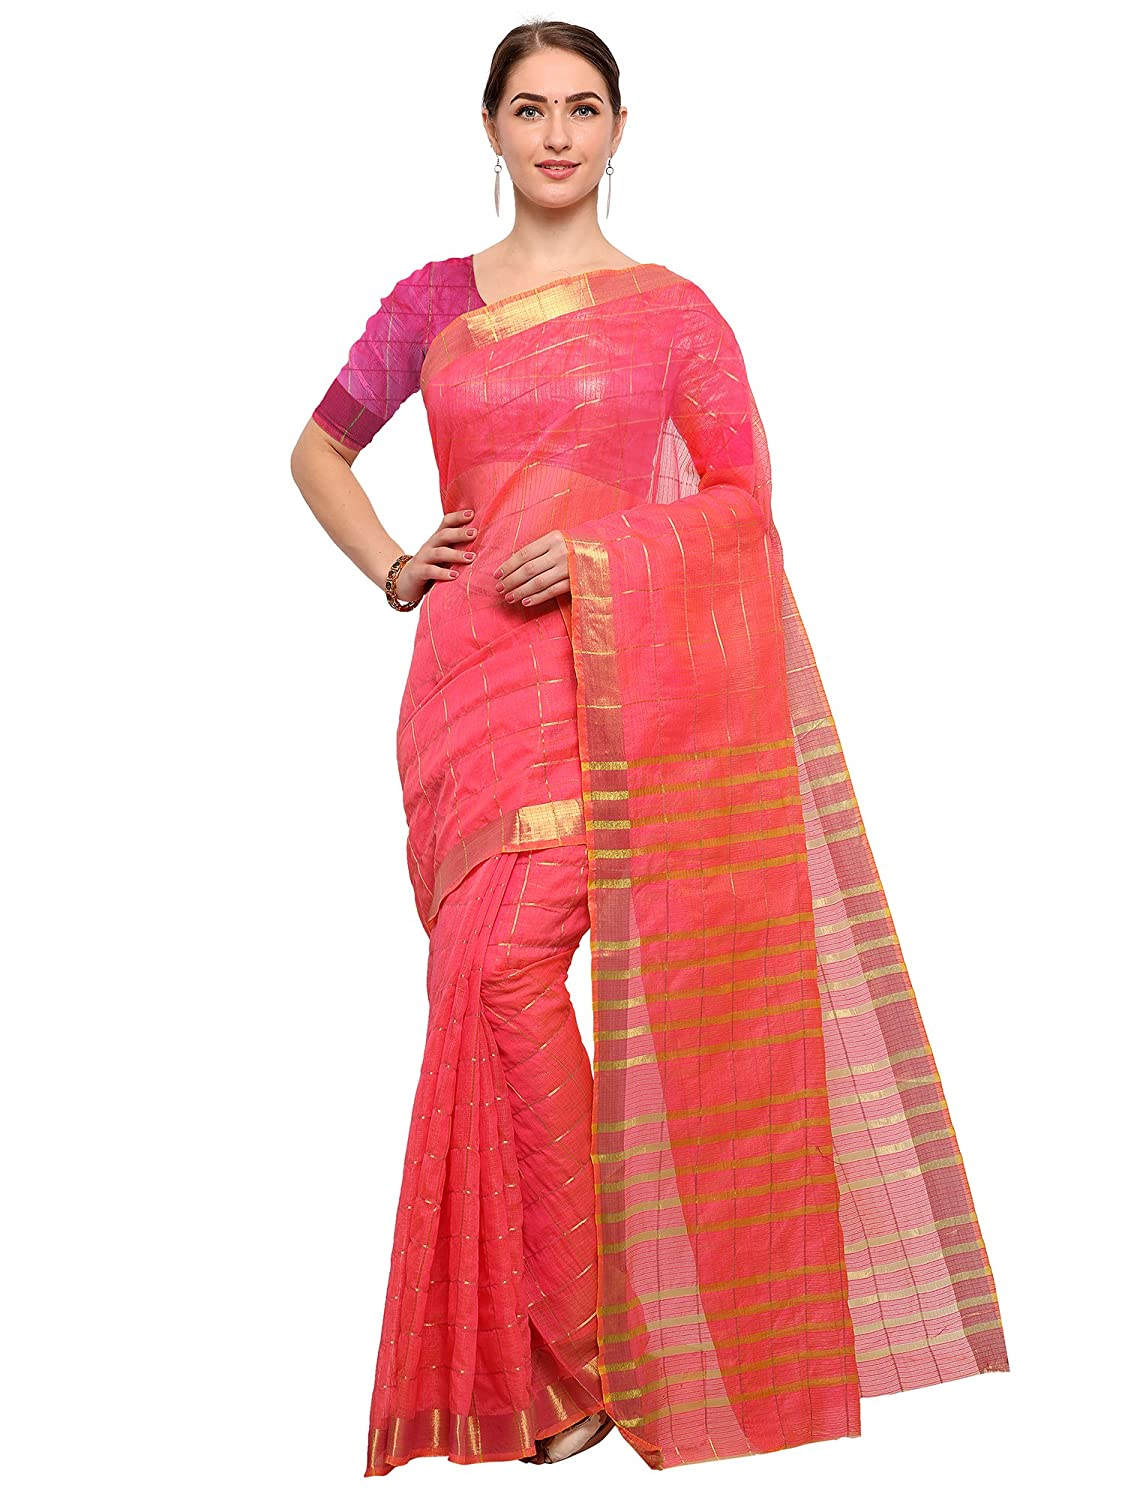 809c725389e Applecreation saree new collection 2018 sarees below 500 rupees sarees  combo offer designer sarees sarees new collection sarees for women latest  design ...